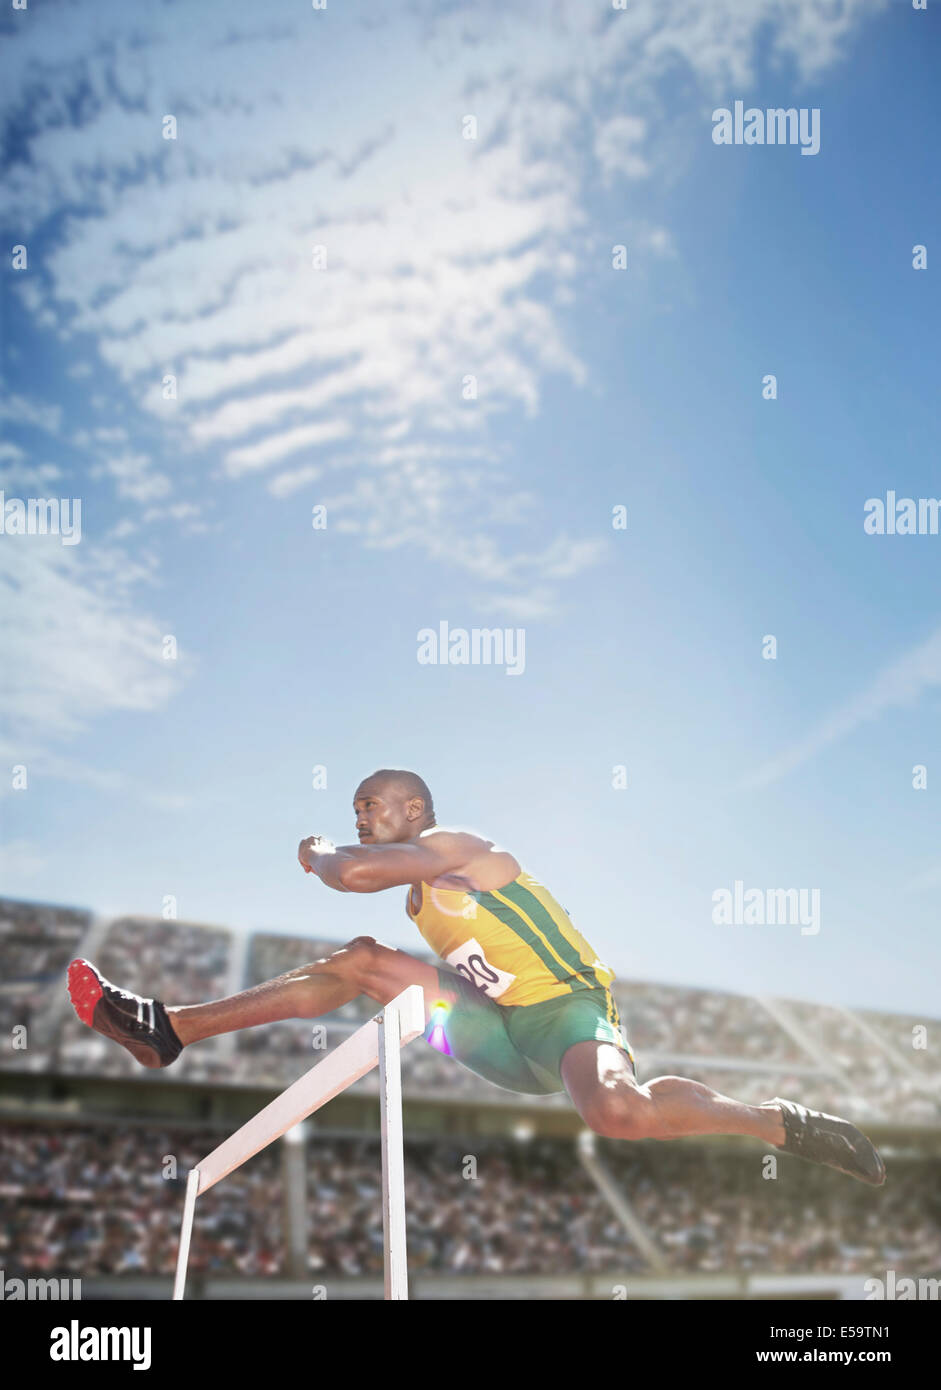 Track and field athlete jumping hurdle - Stock Image